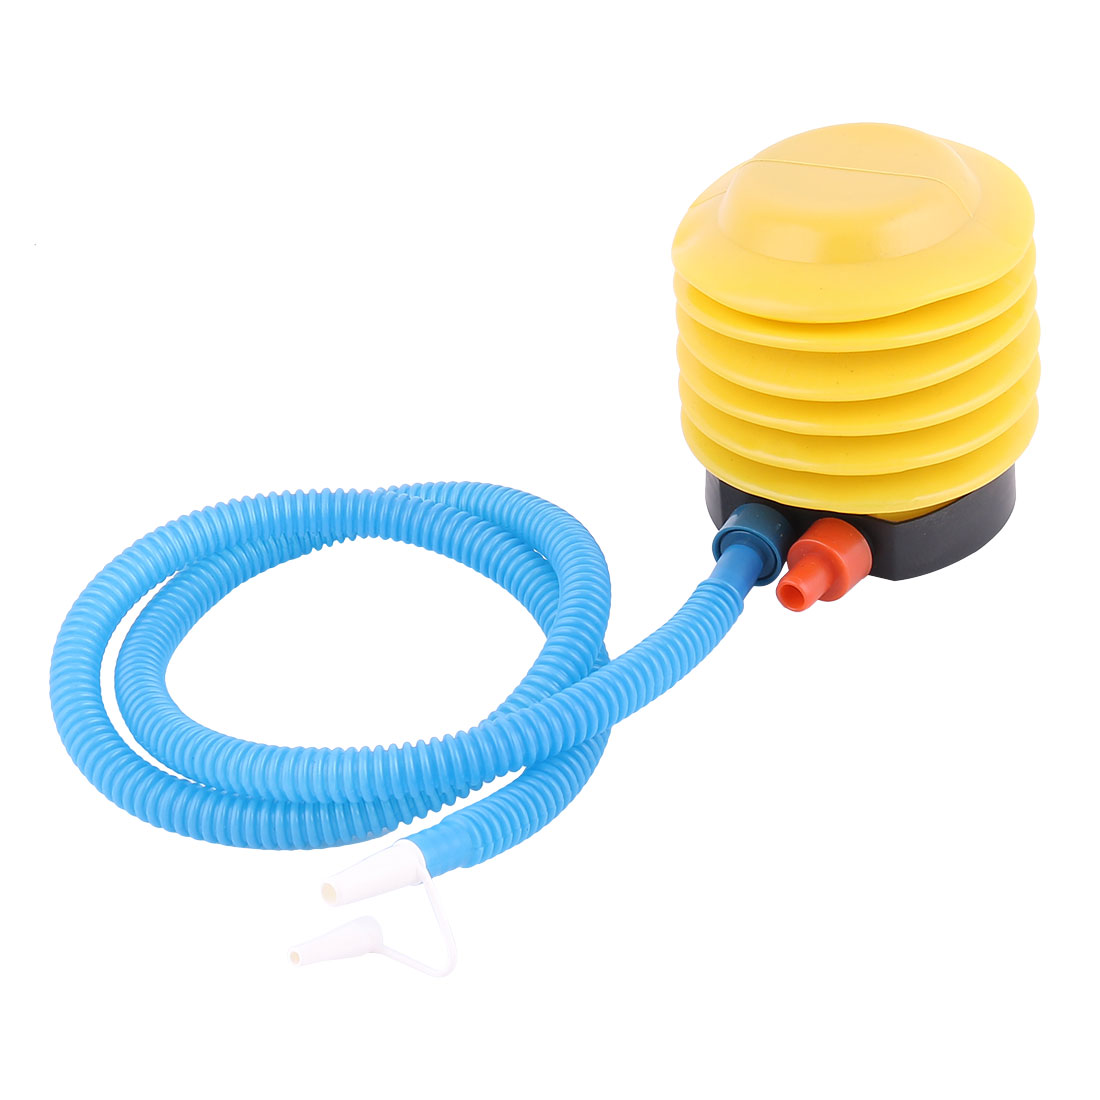 Balloon Air Toys Blue Yellow Hand Foot Plastic Pump